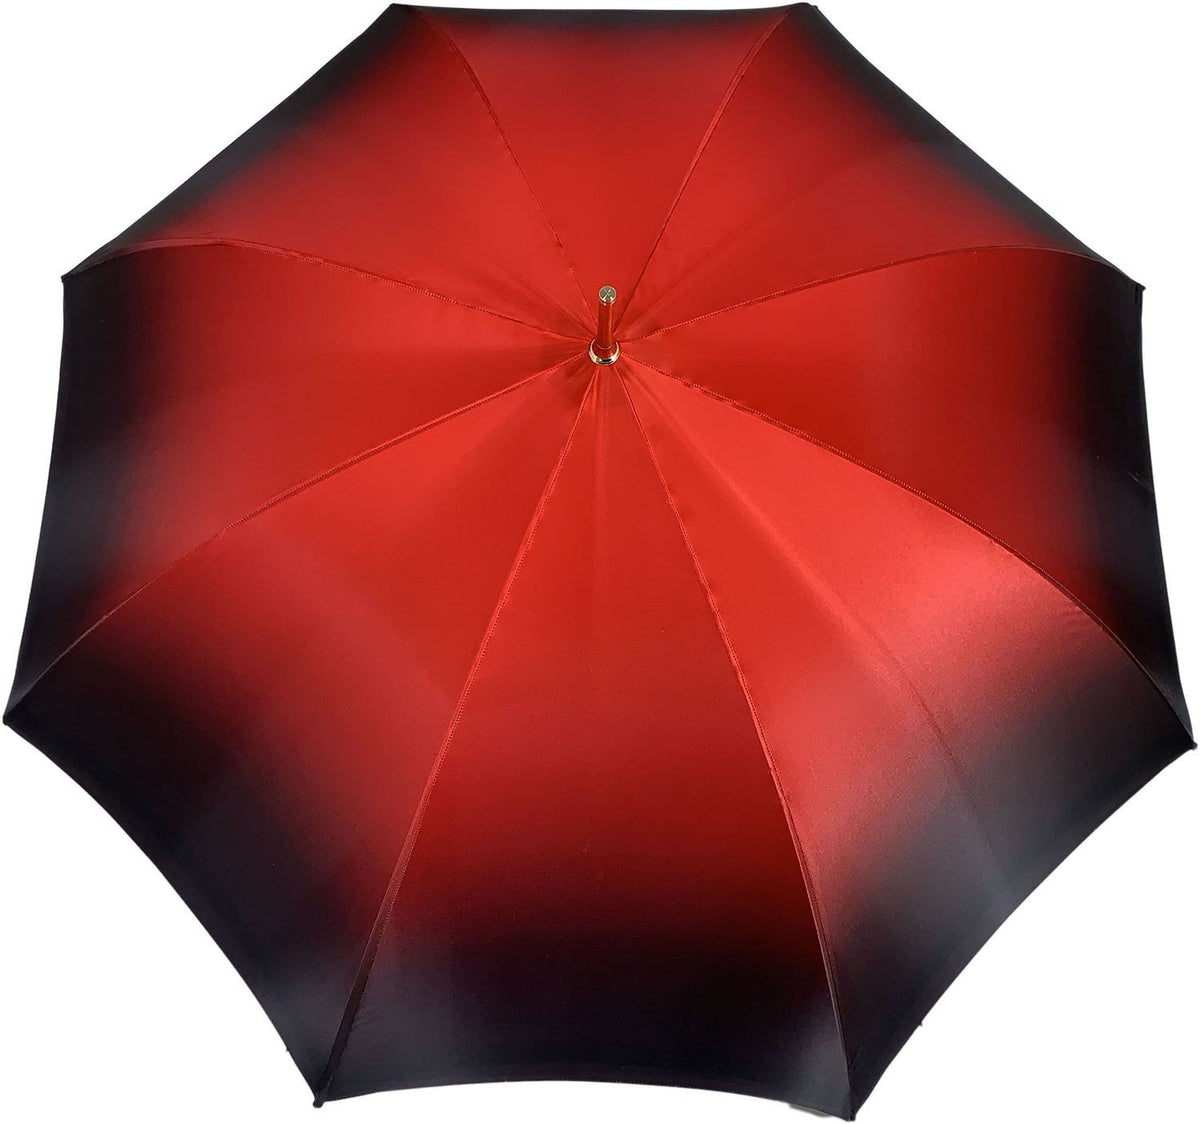 Wonderfull red Umbrella With Rose Design